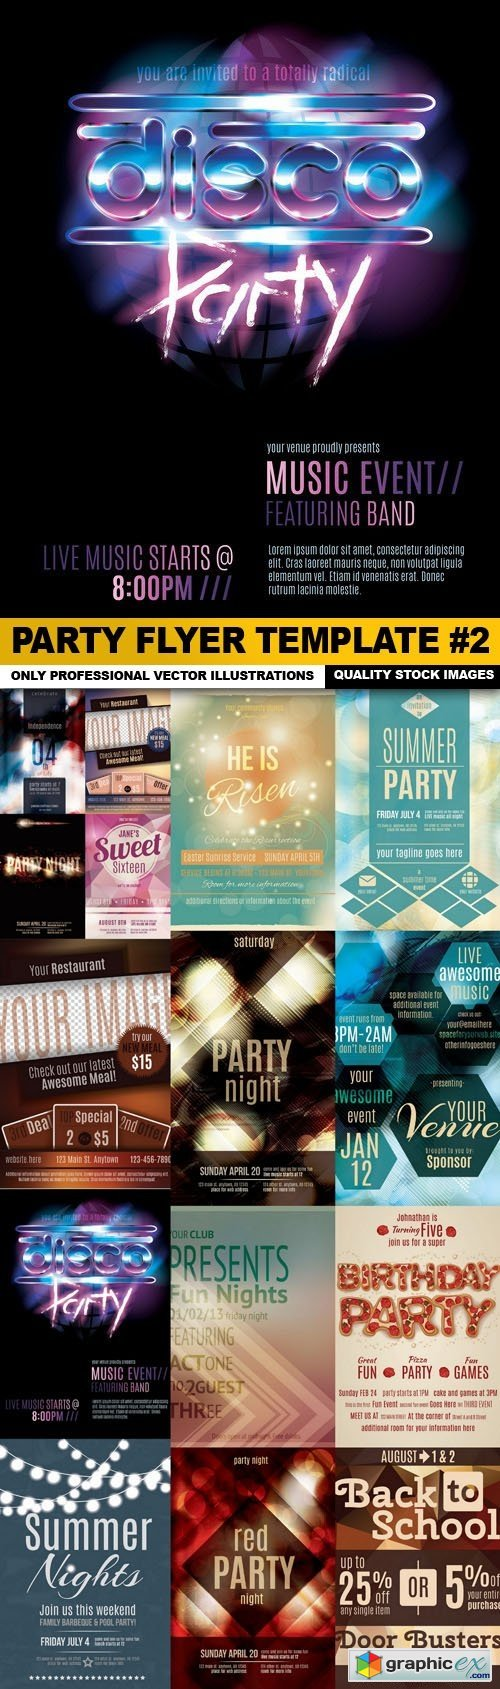 Party Flyer Template #2